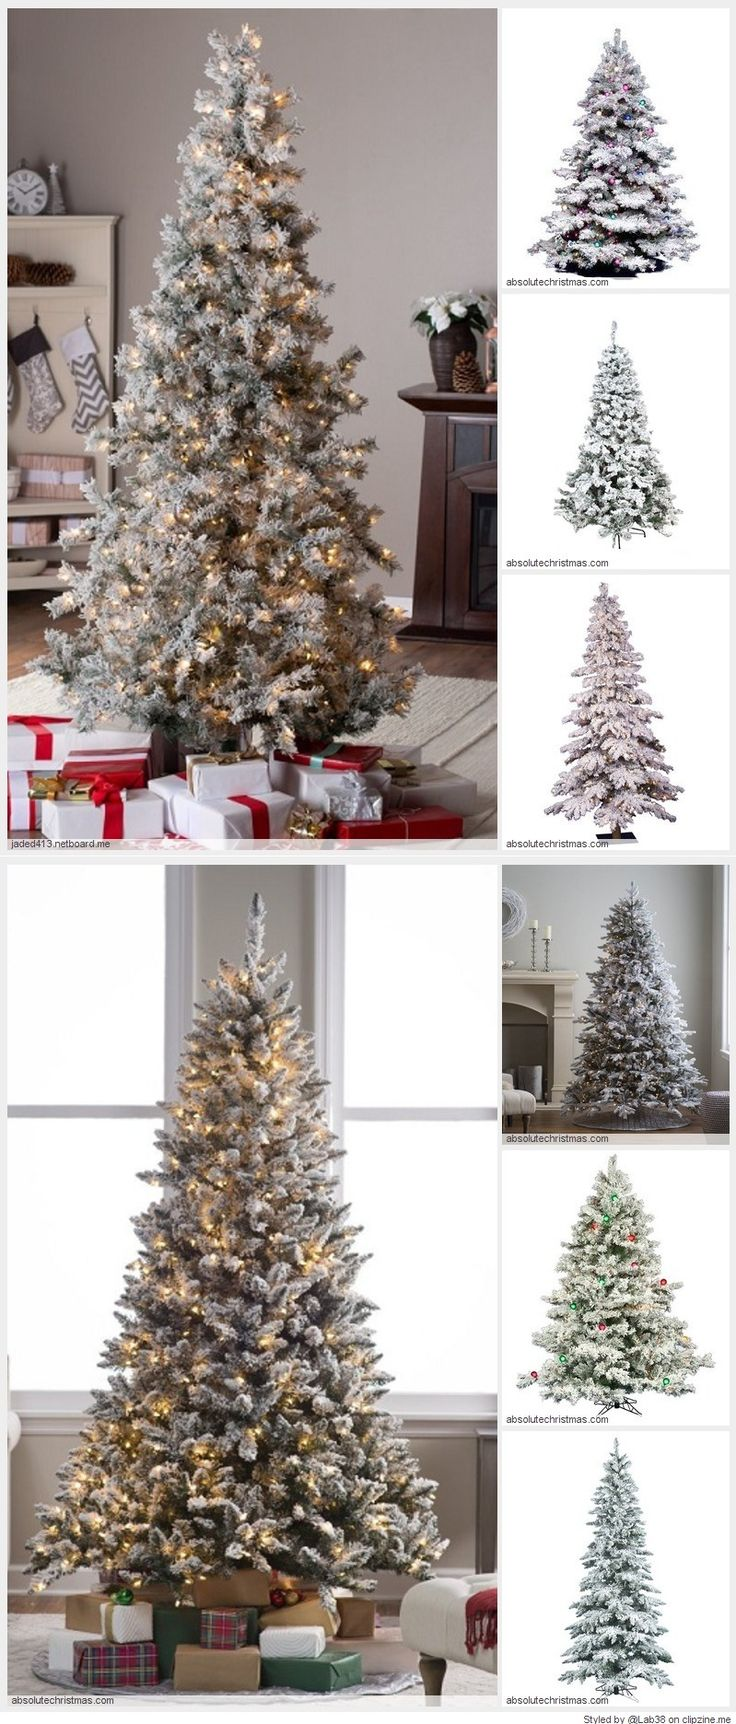 Flocked Fake Christmas Trees turn your home